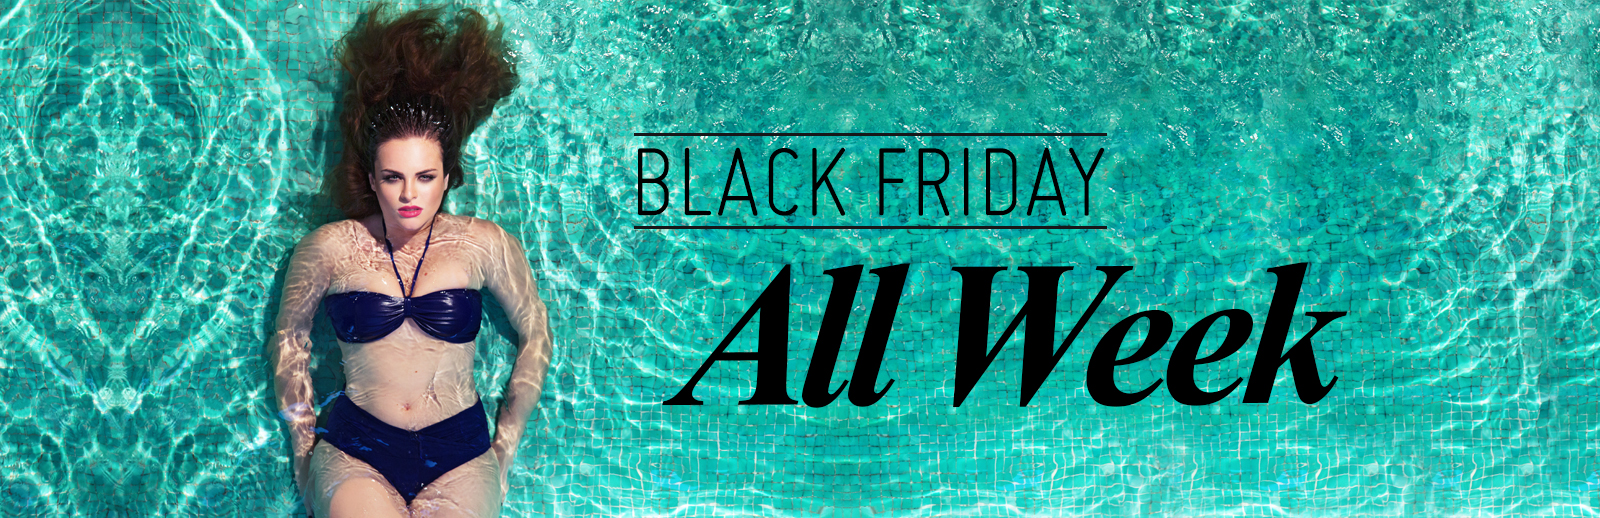 lojas plus size no black friday 2